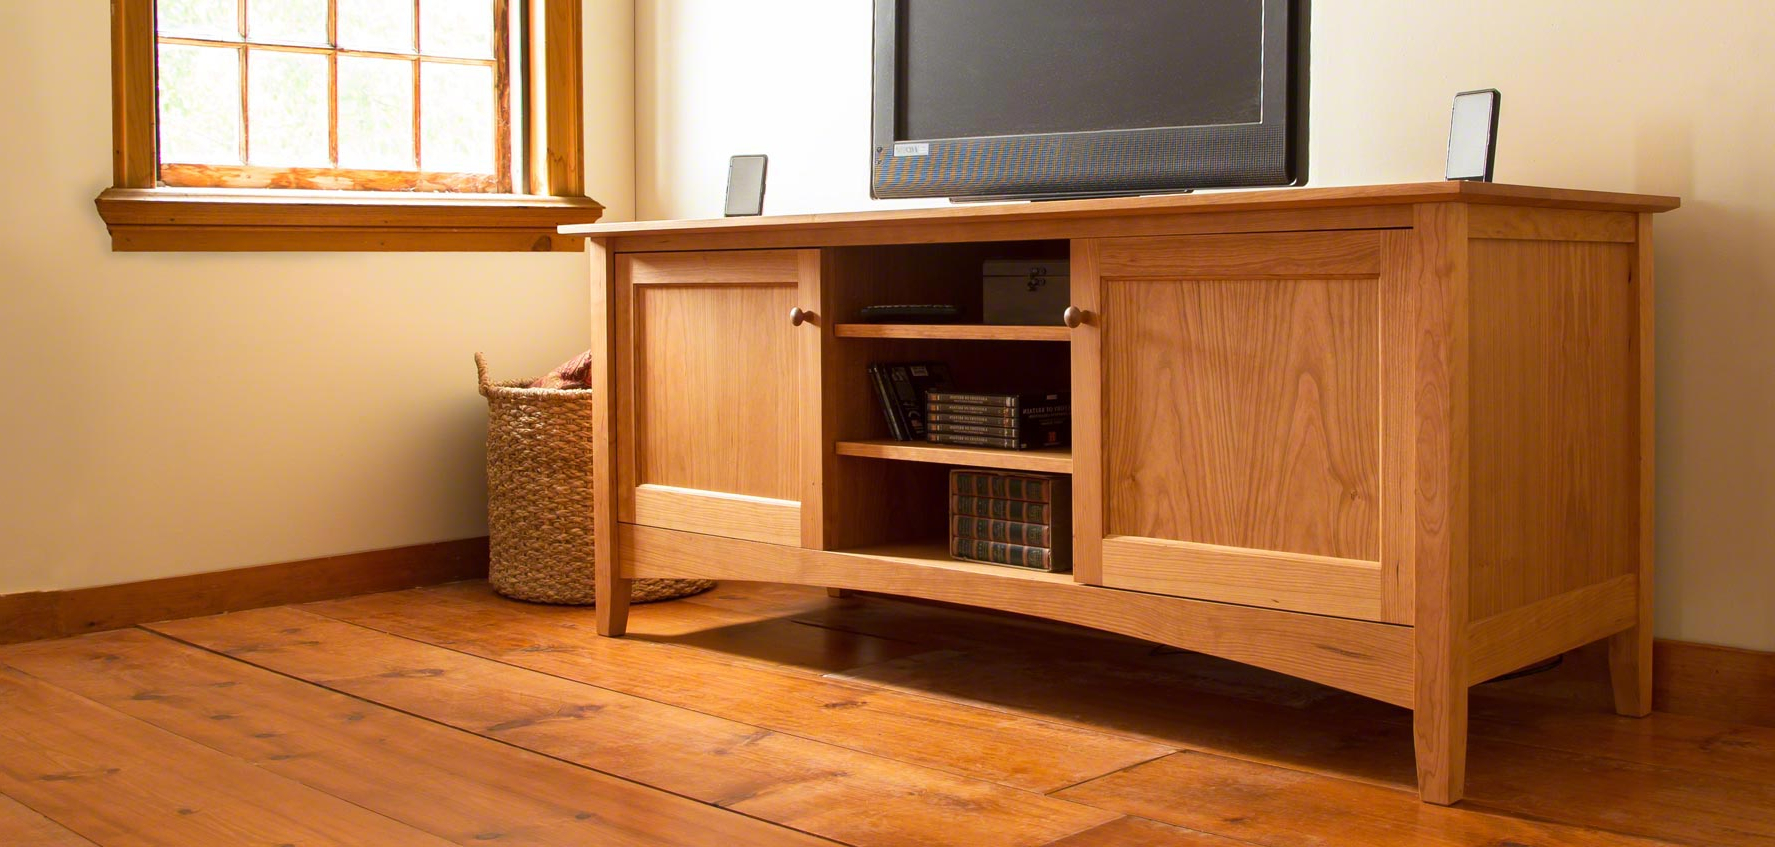 Trendy Wood Tv Floor Stands Intended For Handcrafted Wood Tv Stands & Media Consoles – Vermont Woods Studios (View 12 of 20)